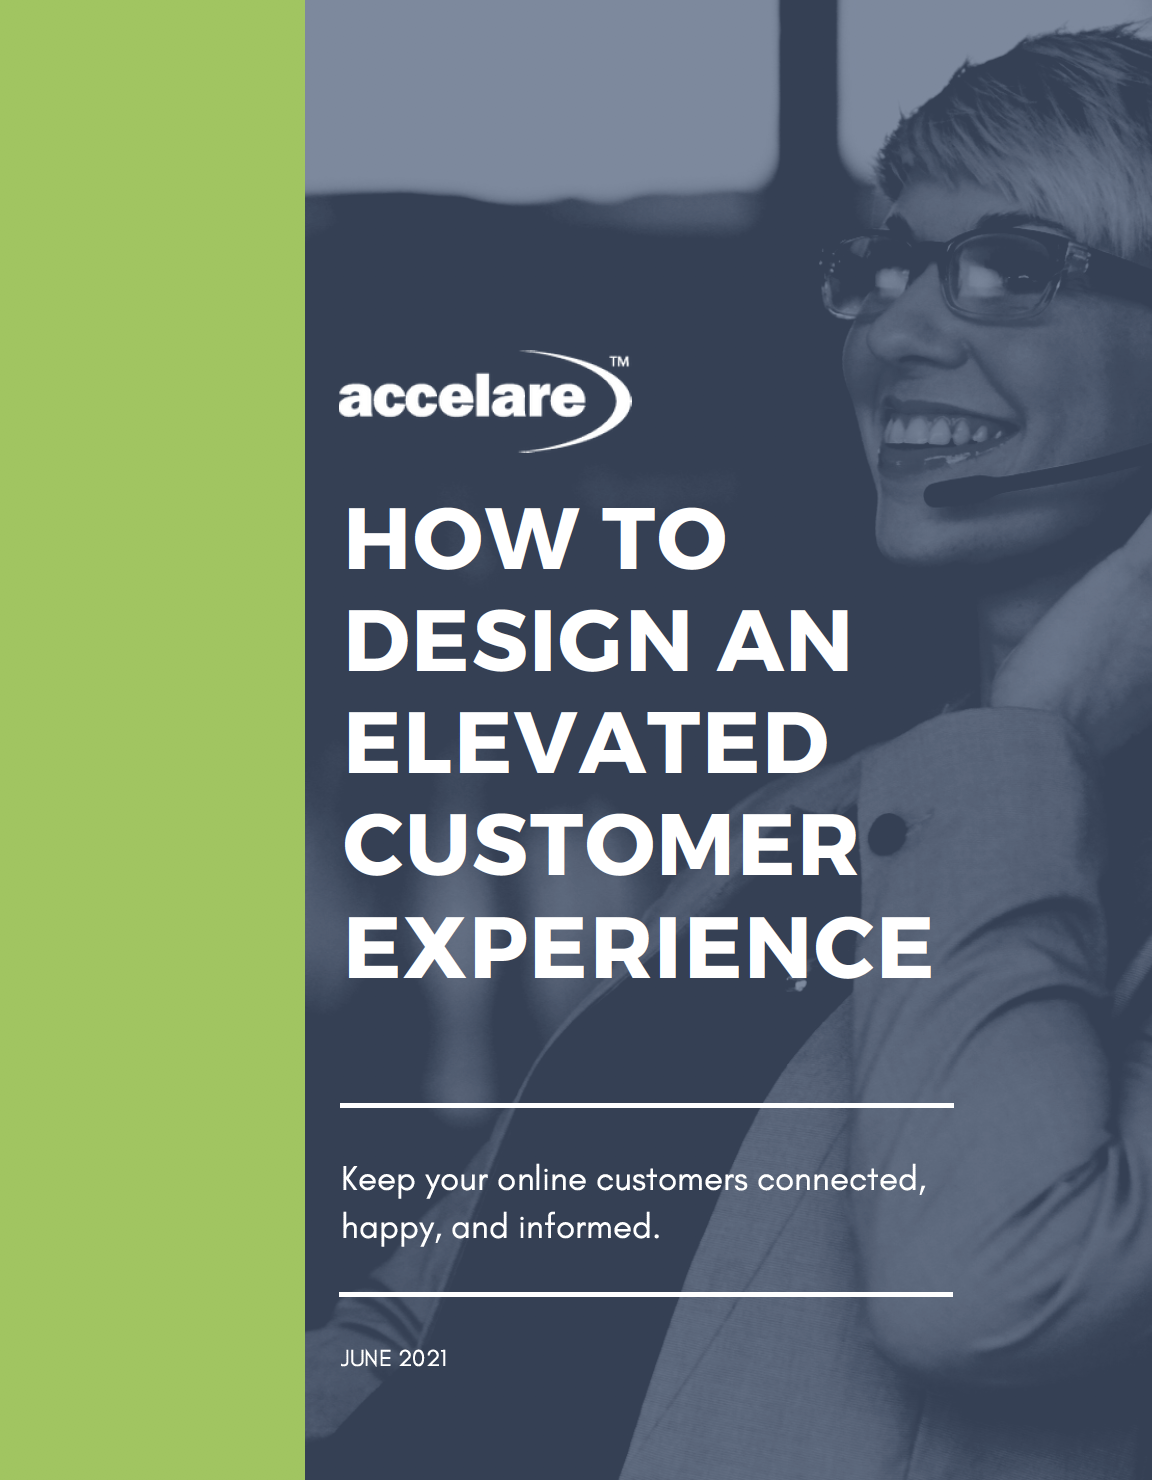 How to Design an Elevated Customer Experience